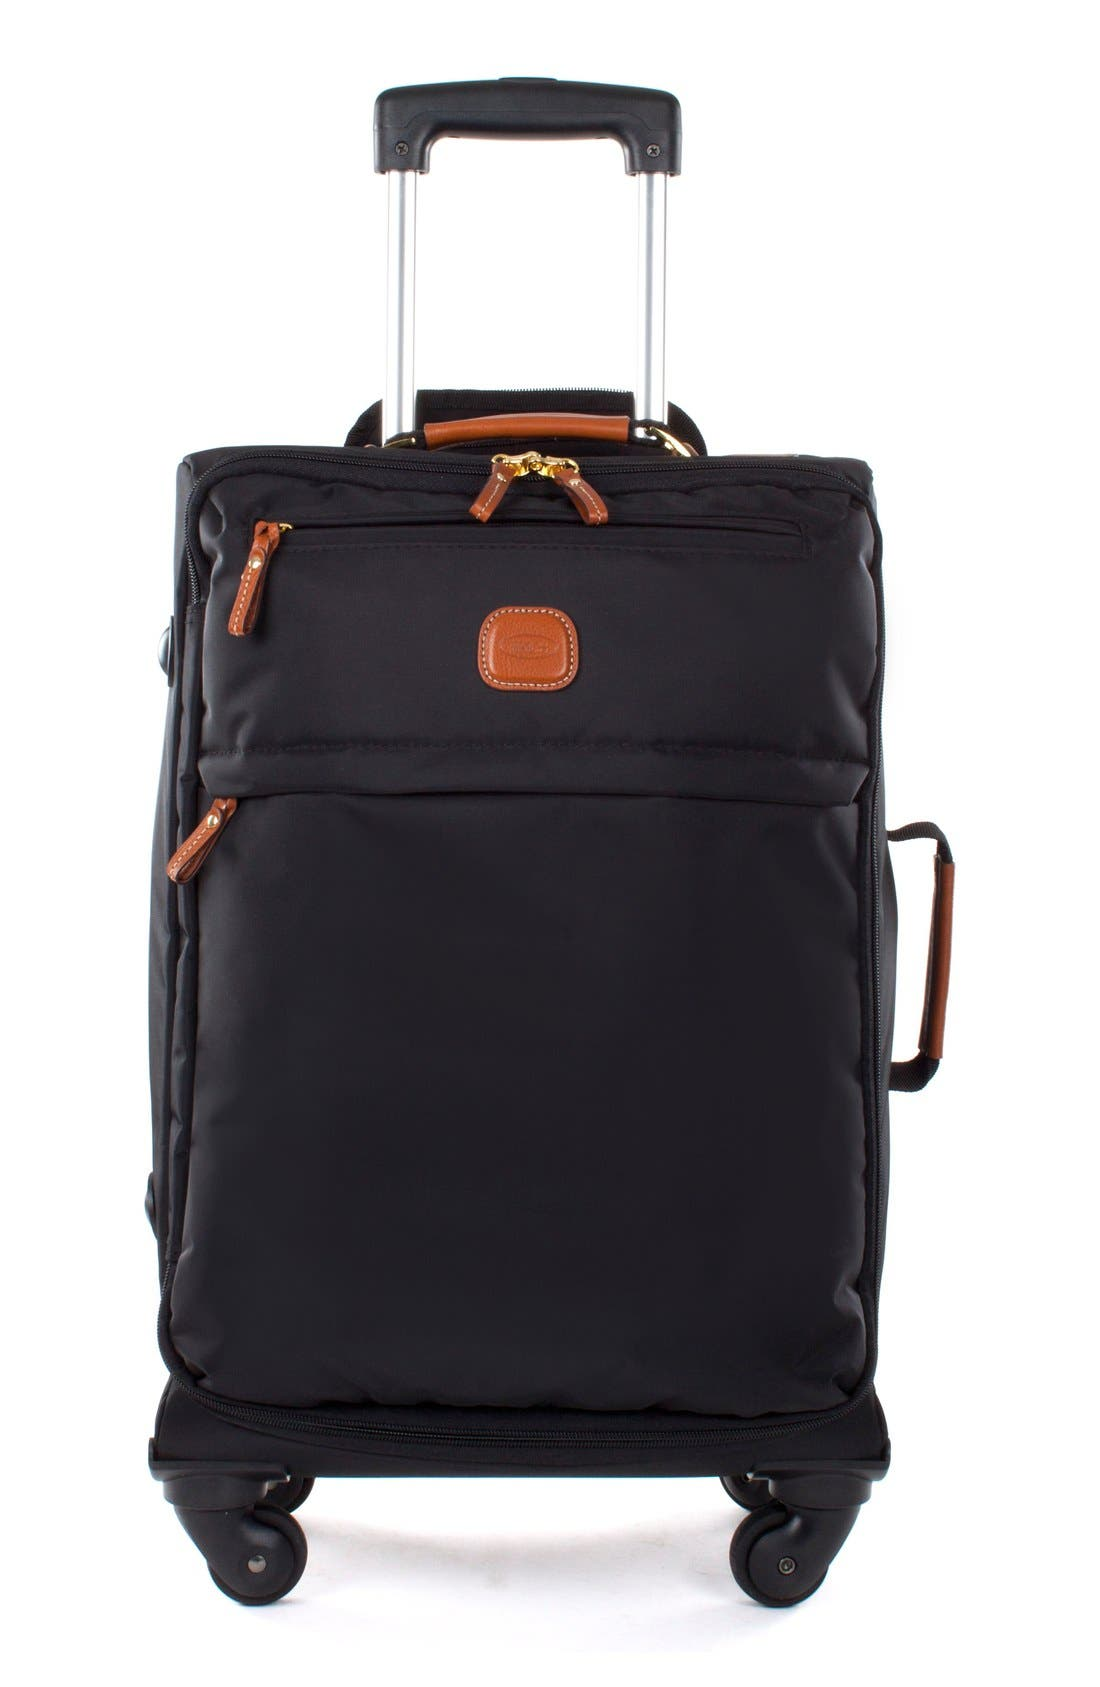 Alternate Image 1 Selected - Bric's 'X-Bag' Ultra Light Spinner Carry-On (21 Inch)